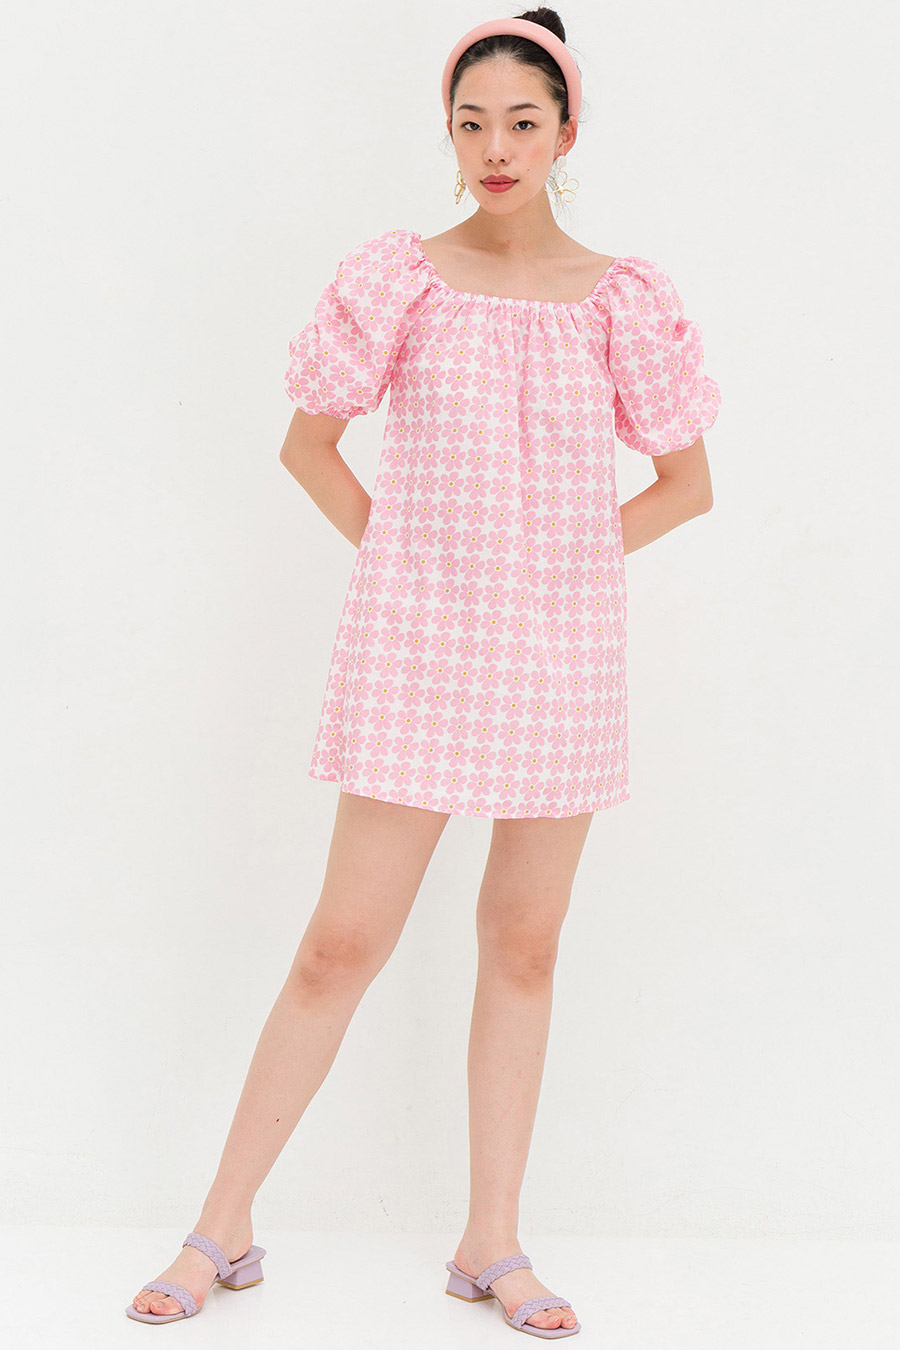 KINSLEY DRESS - TEA ROSE